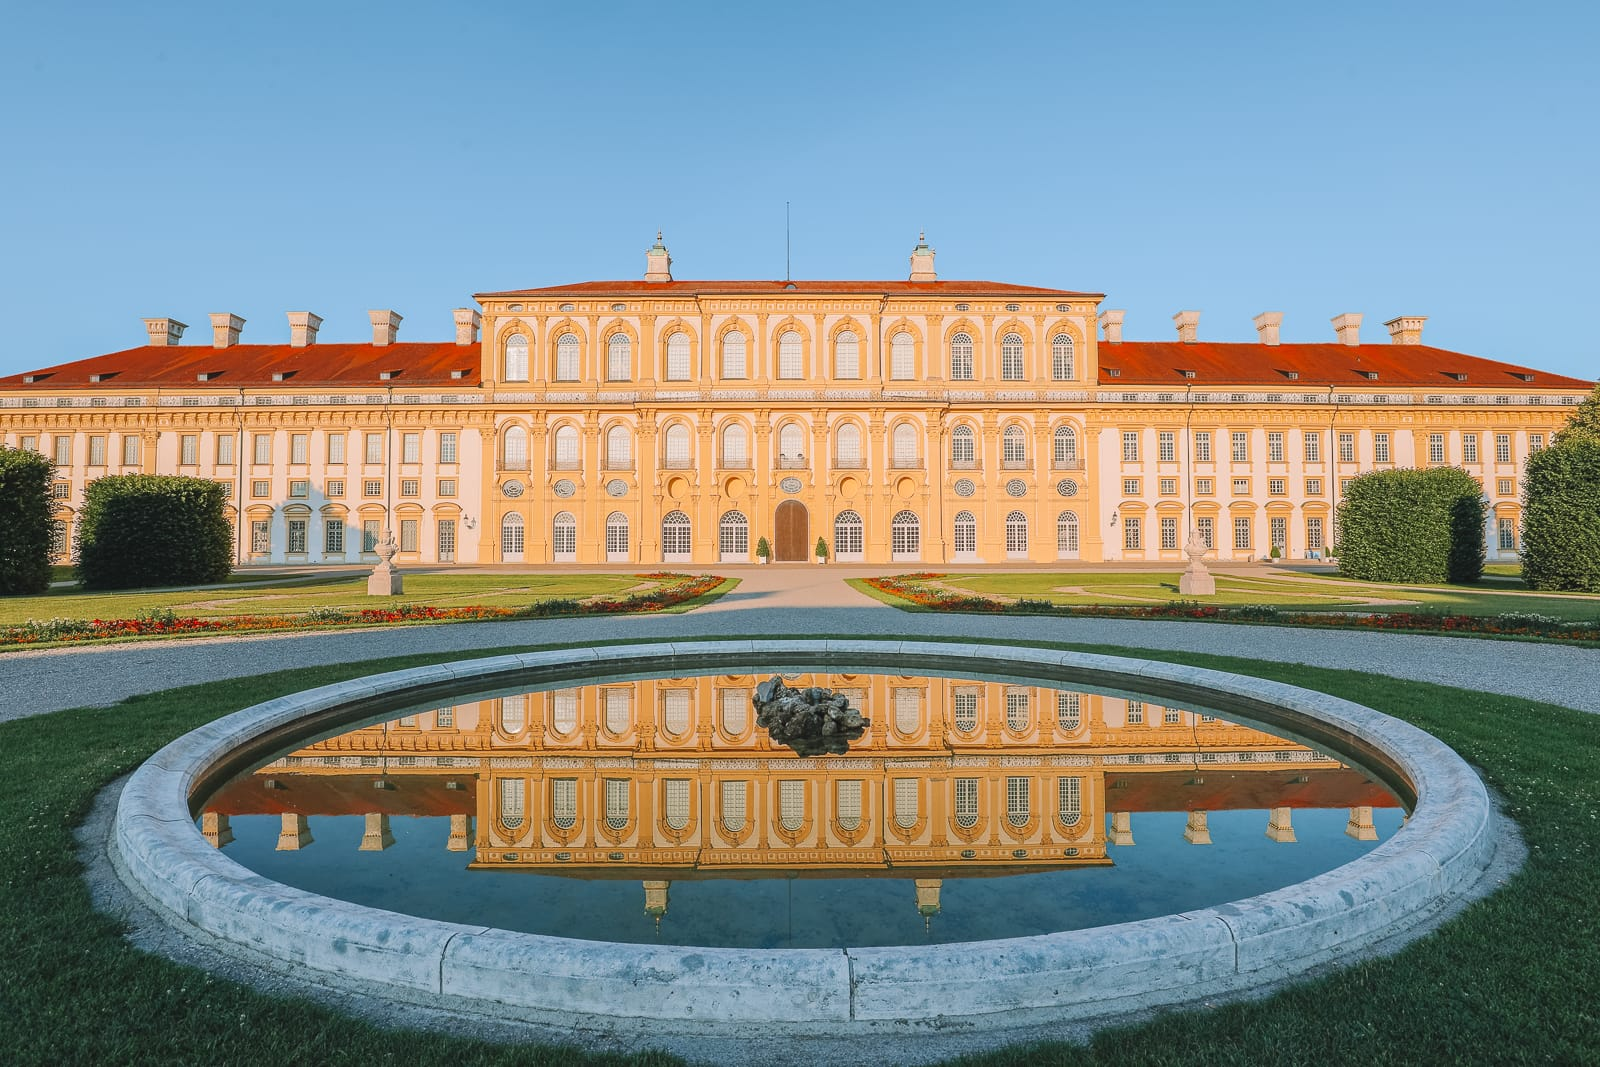 Schleissheim  Palace – The Amazing Palace in Germany You've Never Heard Of But Absolutely Have To Visit! (60)